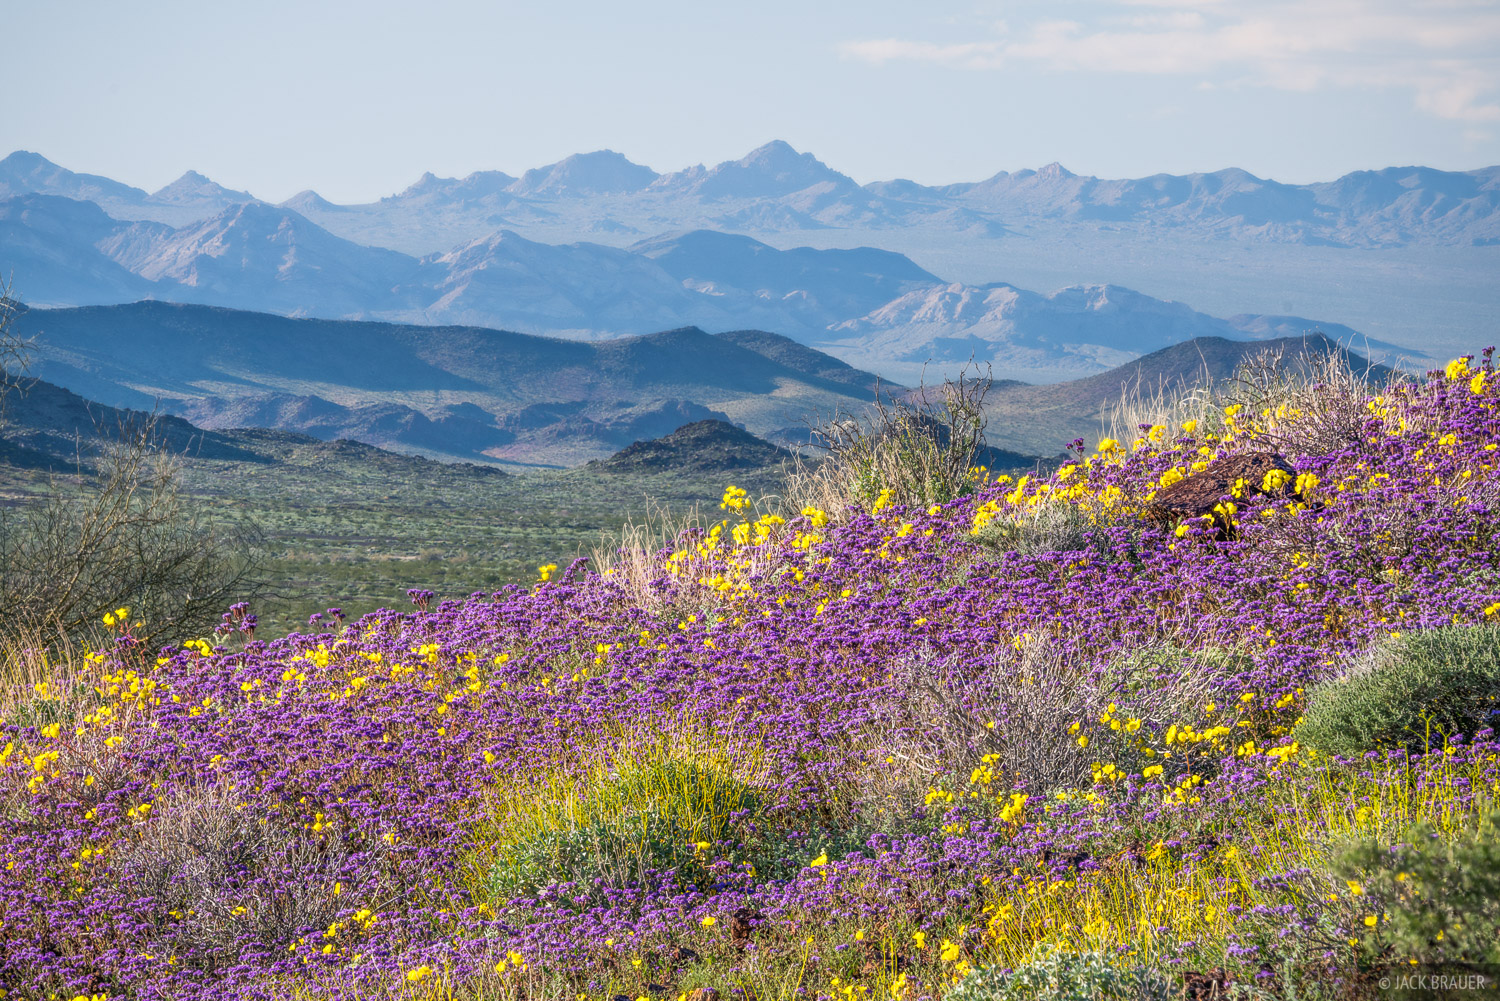 Wildflowers in the Mojave Desert.